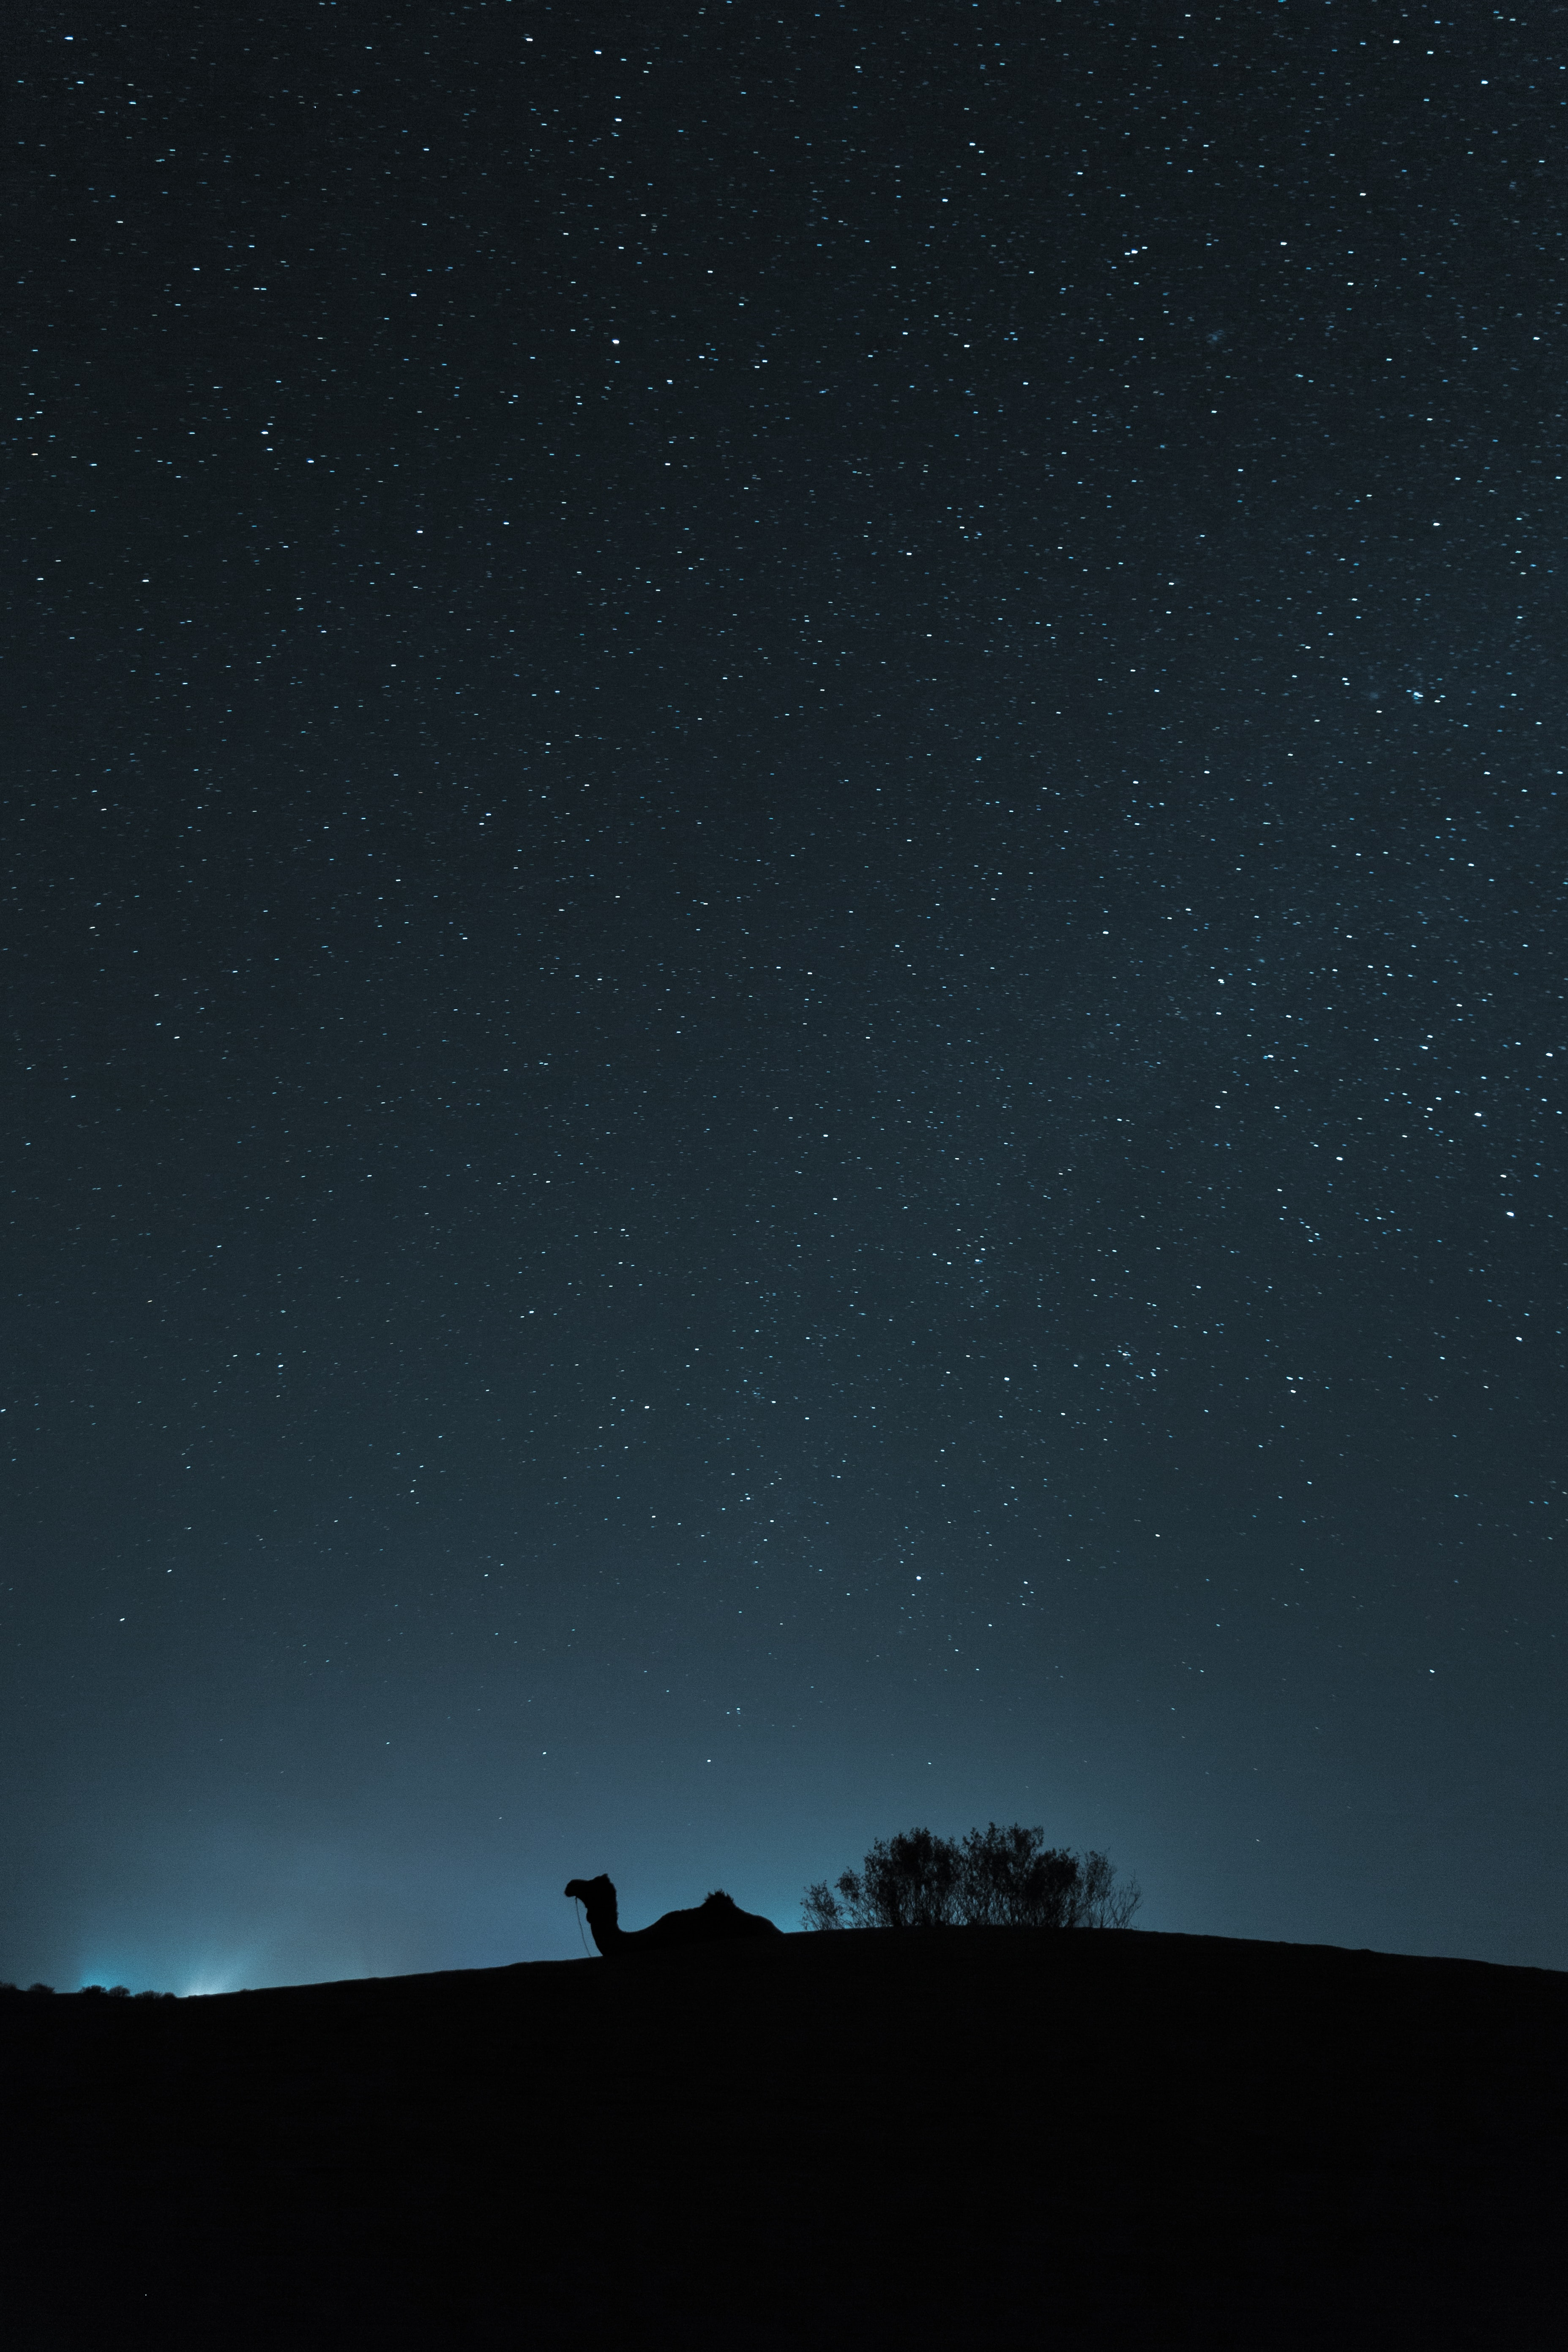 silhouette of camel during nighttime